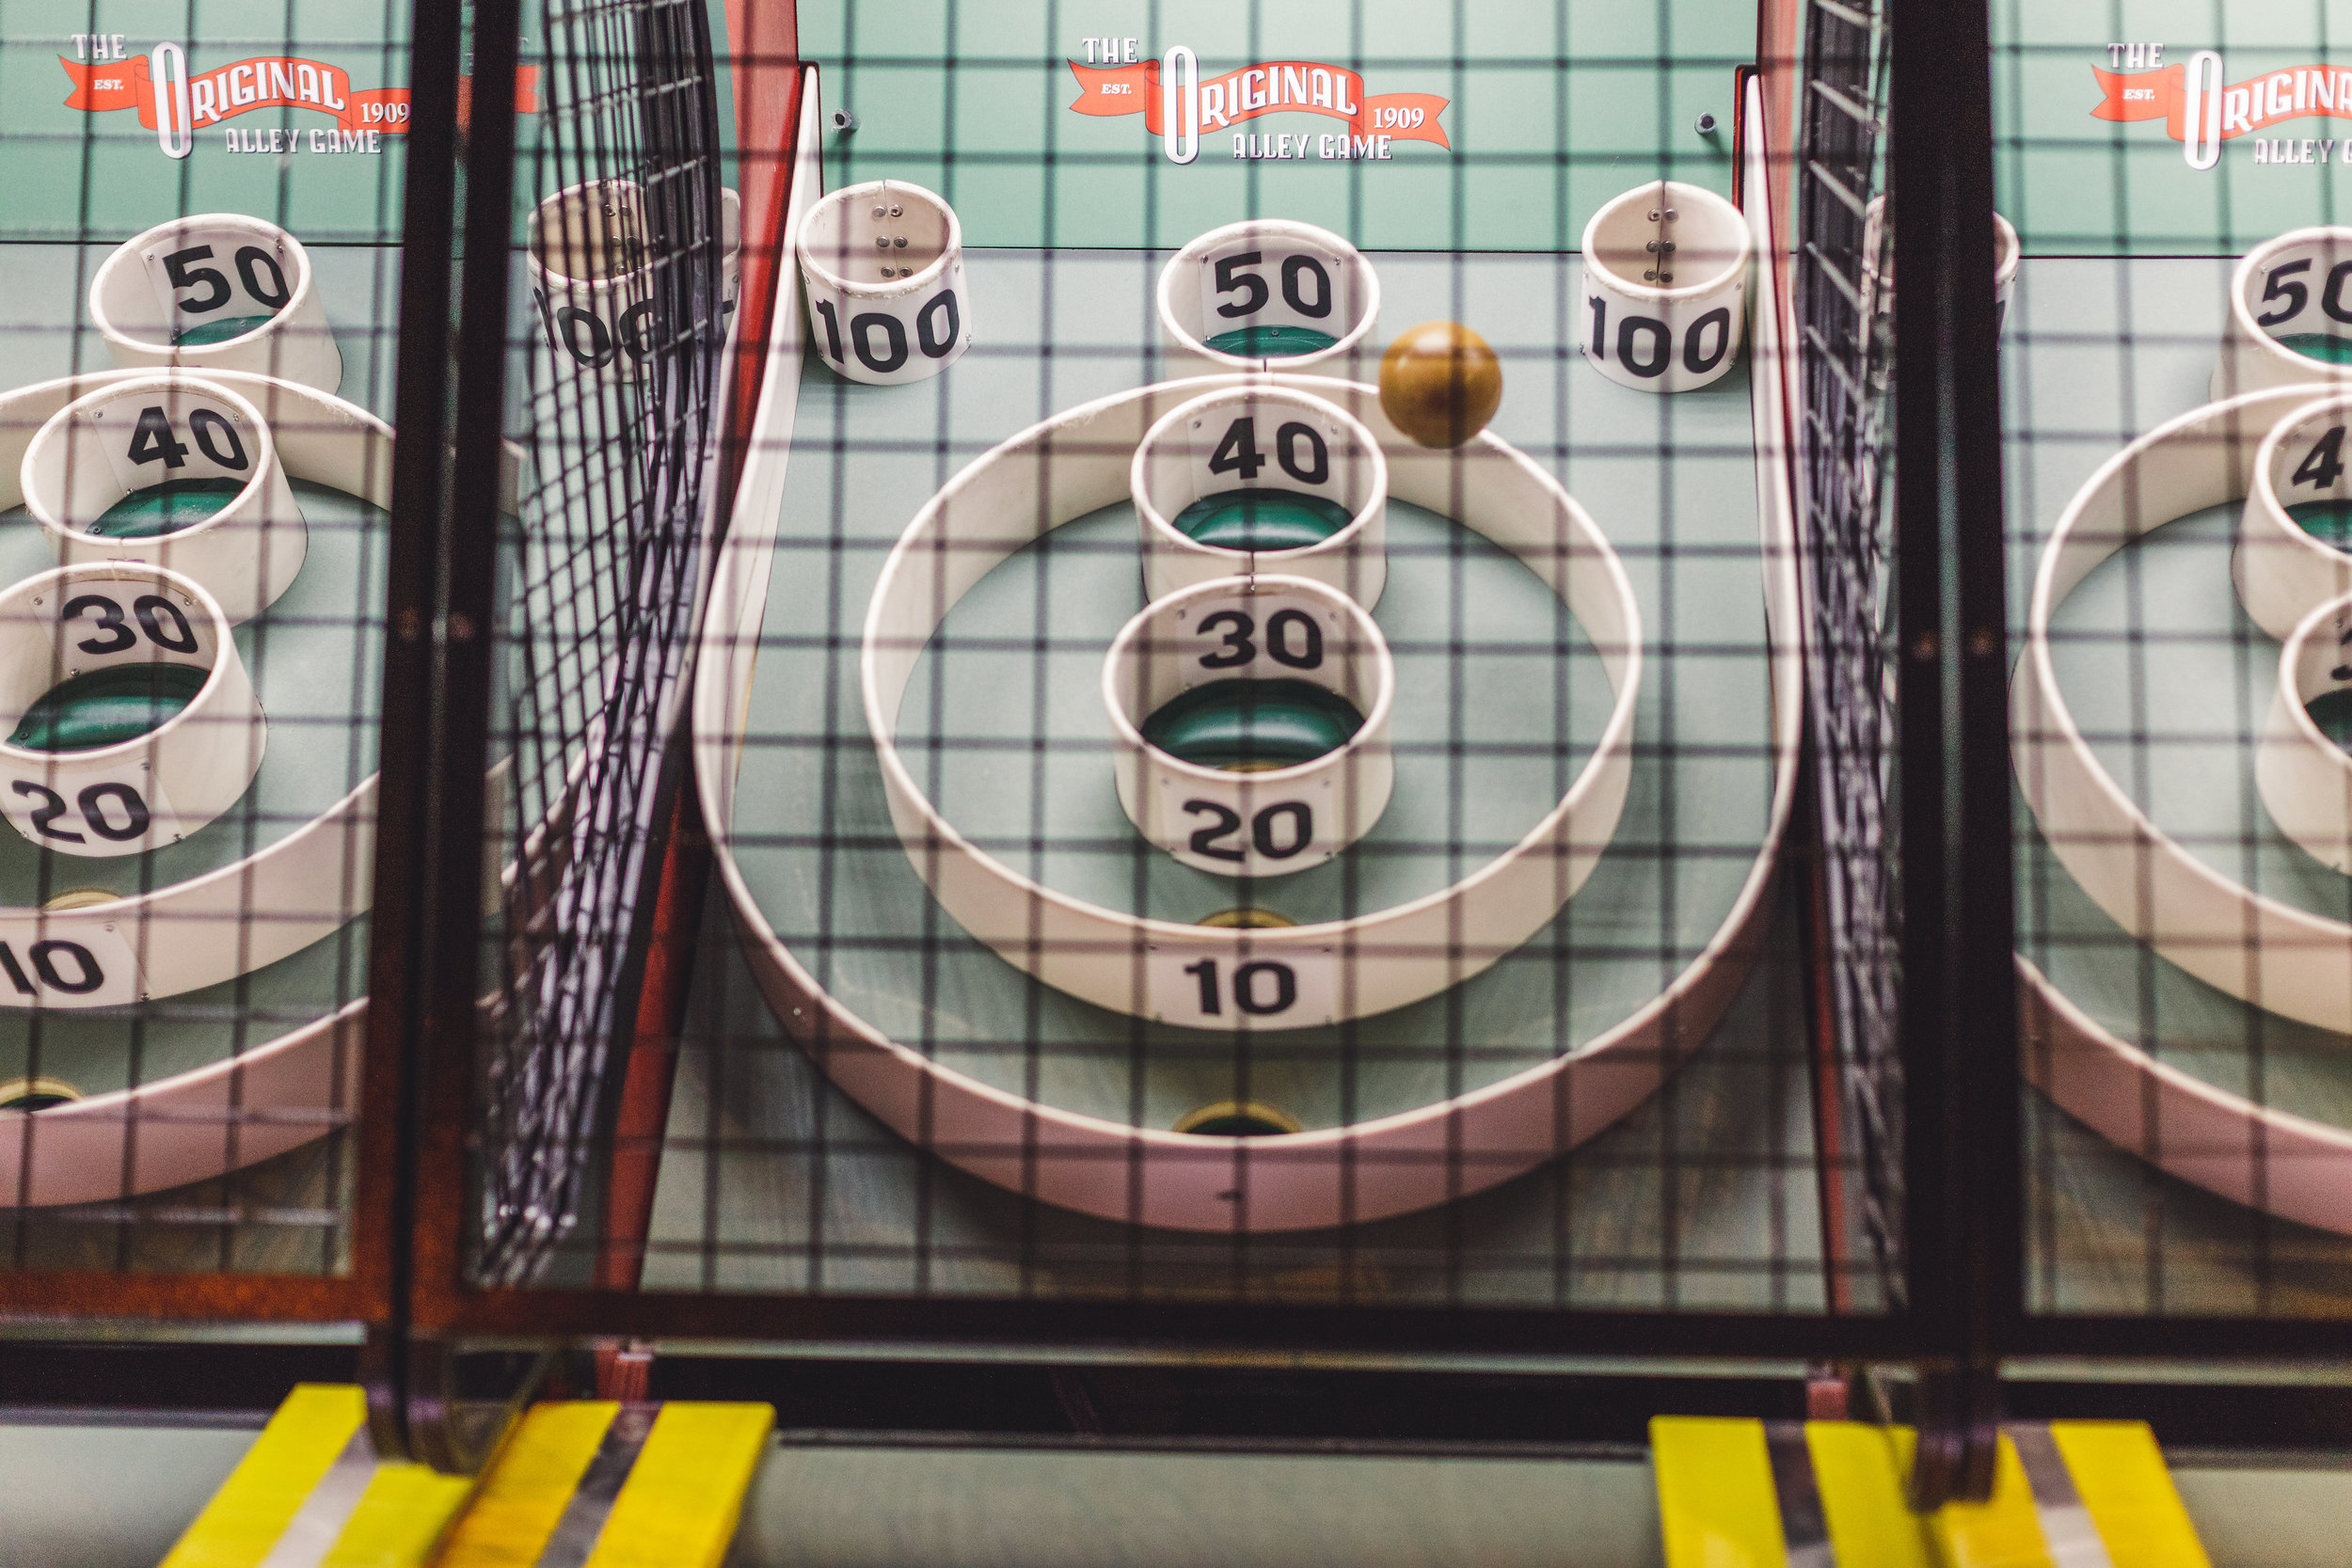 SKEEBALL - We've got the beach arcade classic right here in RVA! No tokens necessary. Just step right up, aim for 100, and let 'er rip!